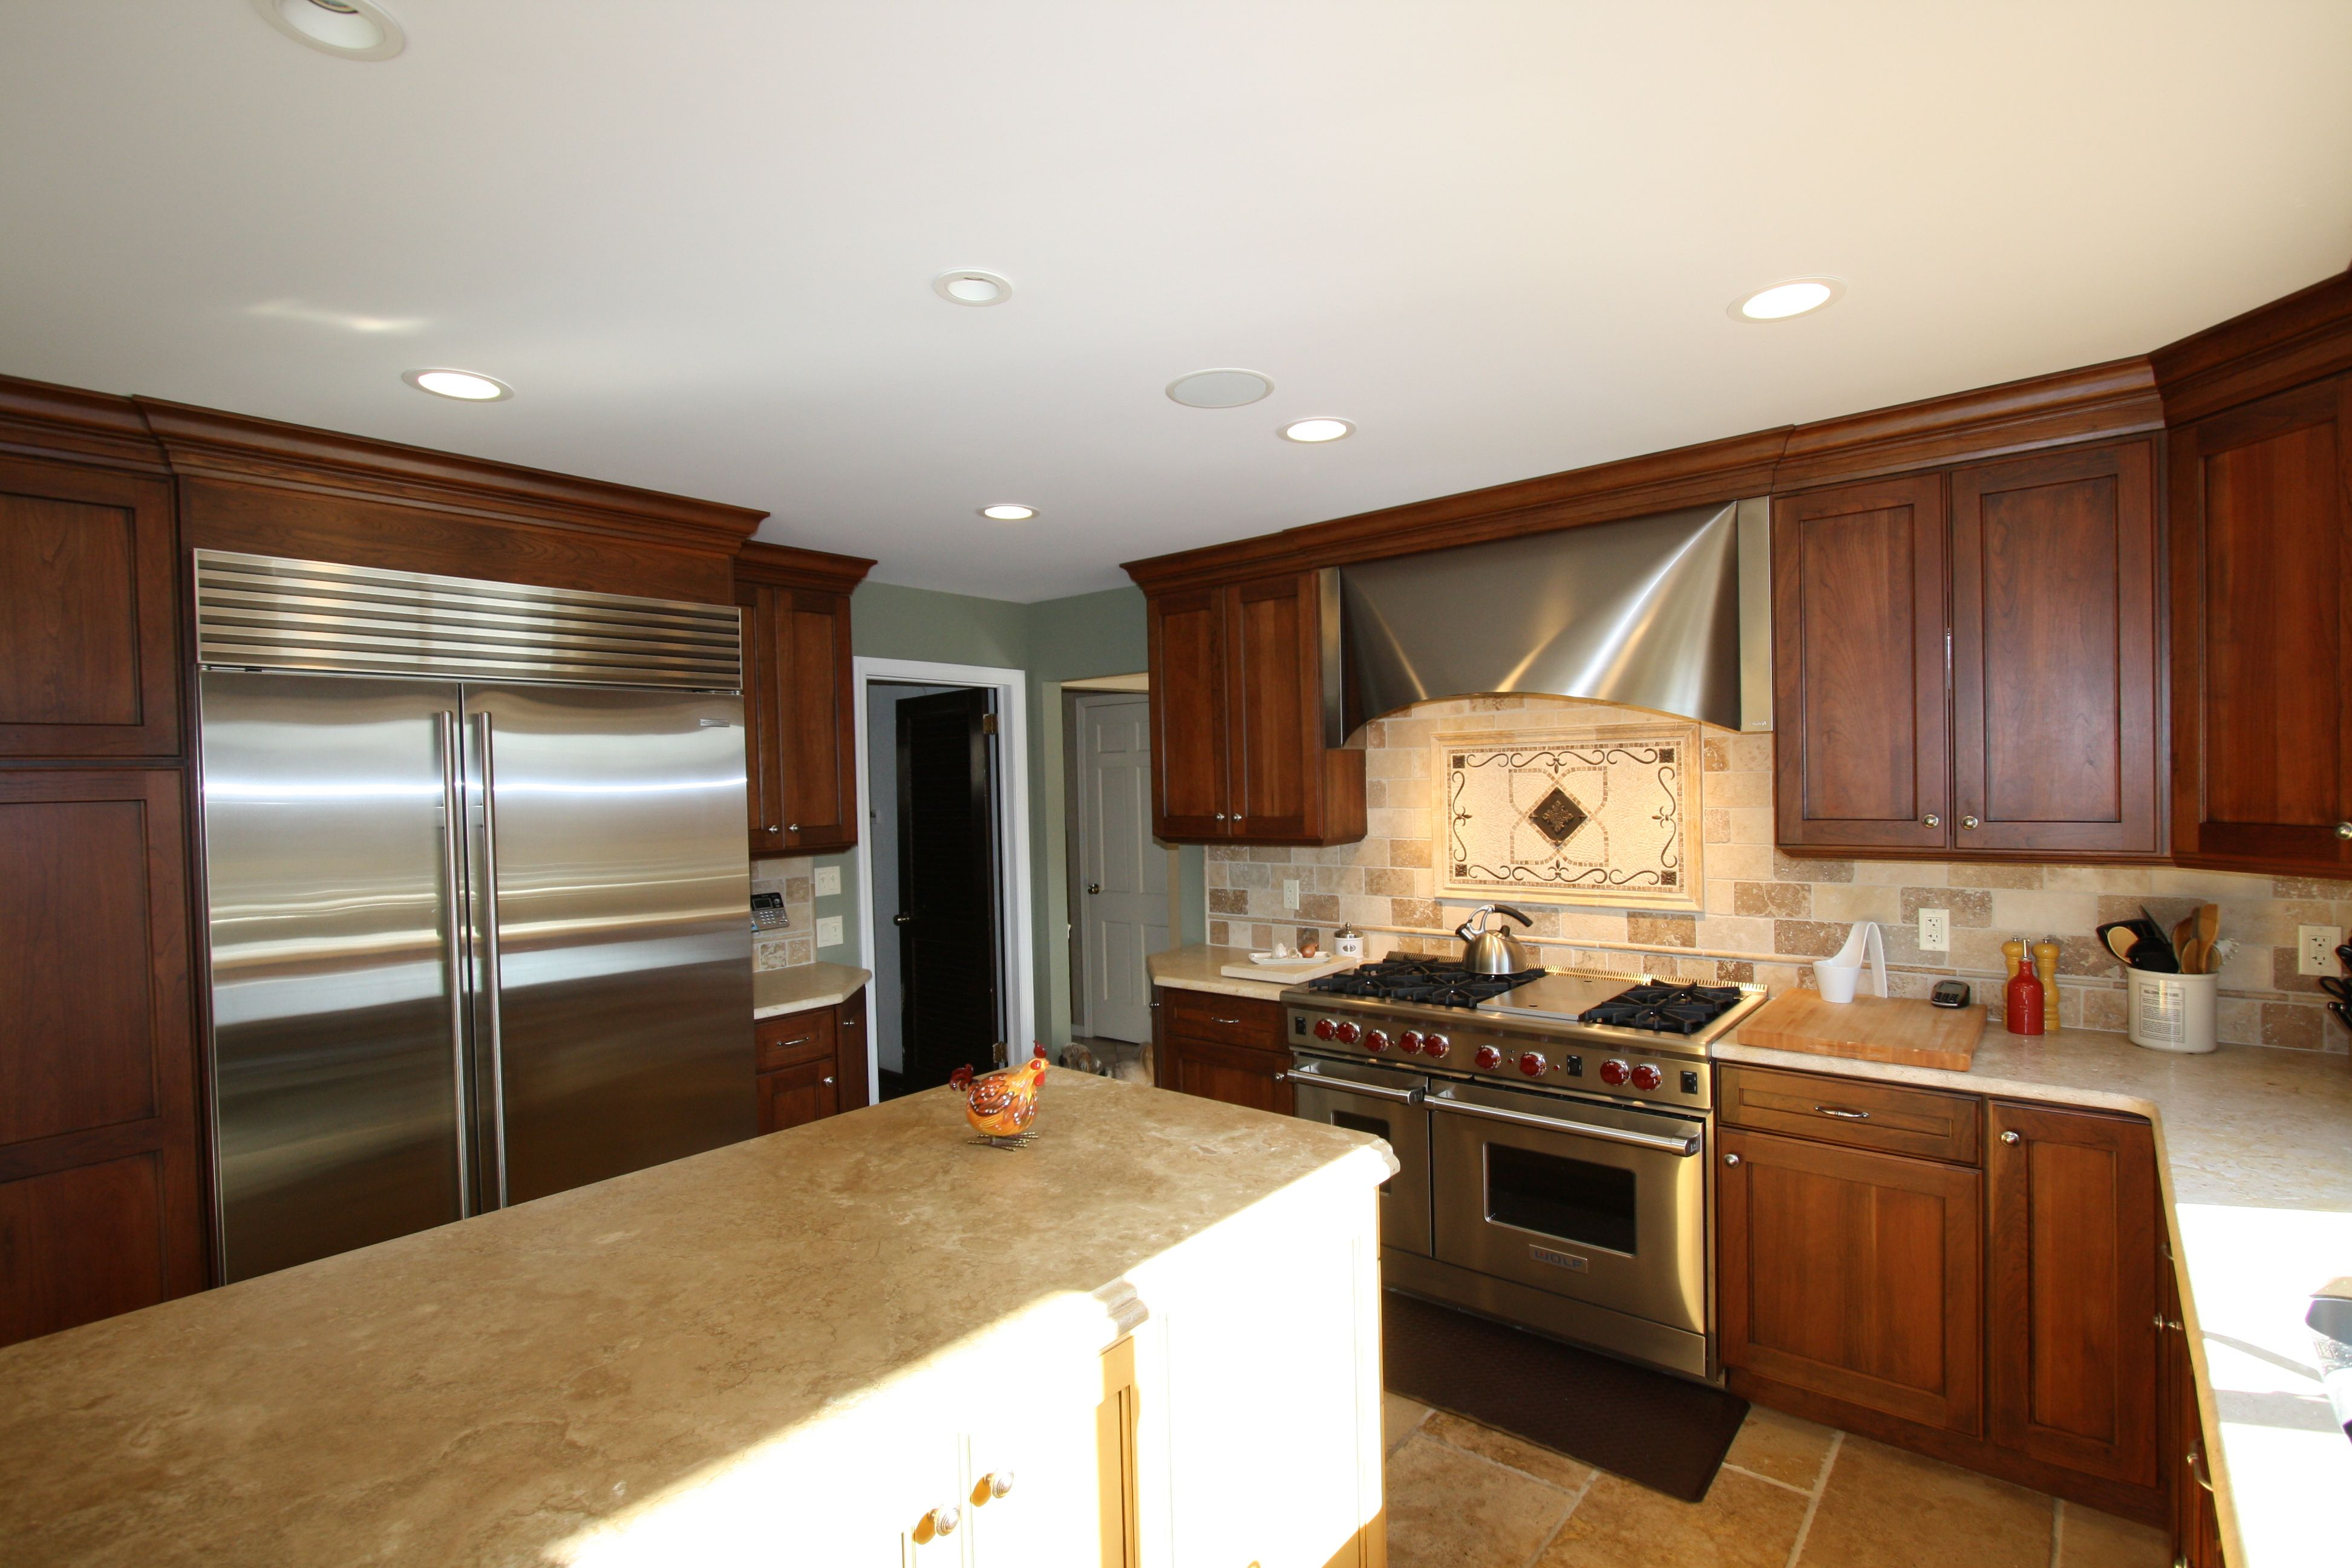 North Caldwell NJ Eclectic Kitchen by Design Right Kitchens ...